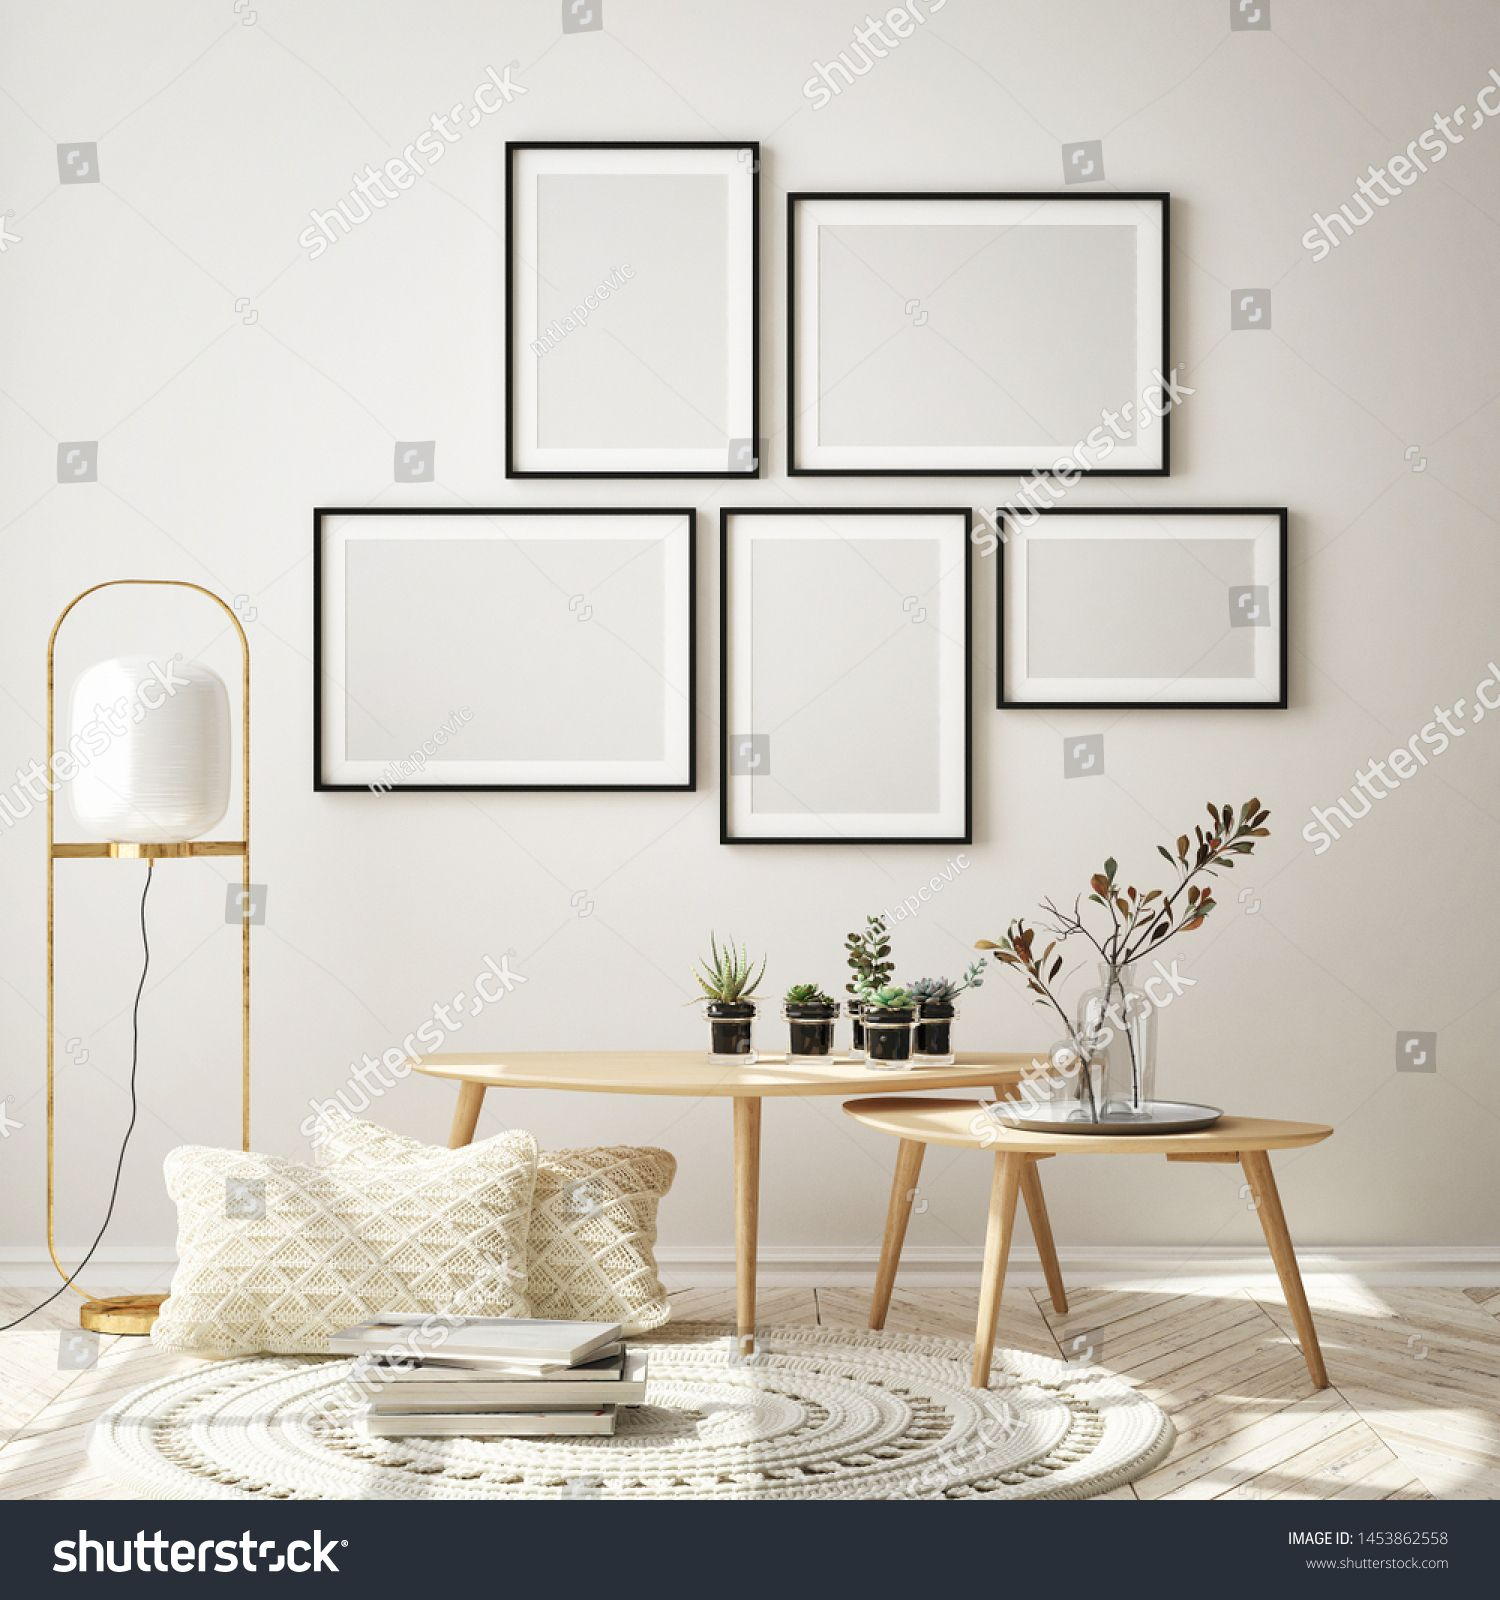 mock up poster frame in modern interior background living room Scandinavian style 3D render 3D illustration